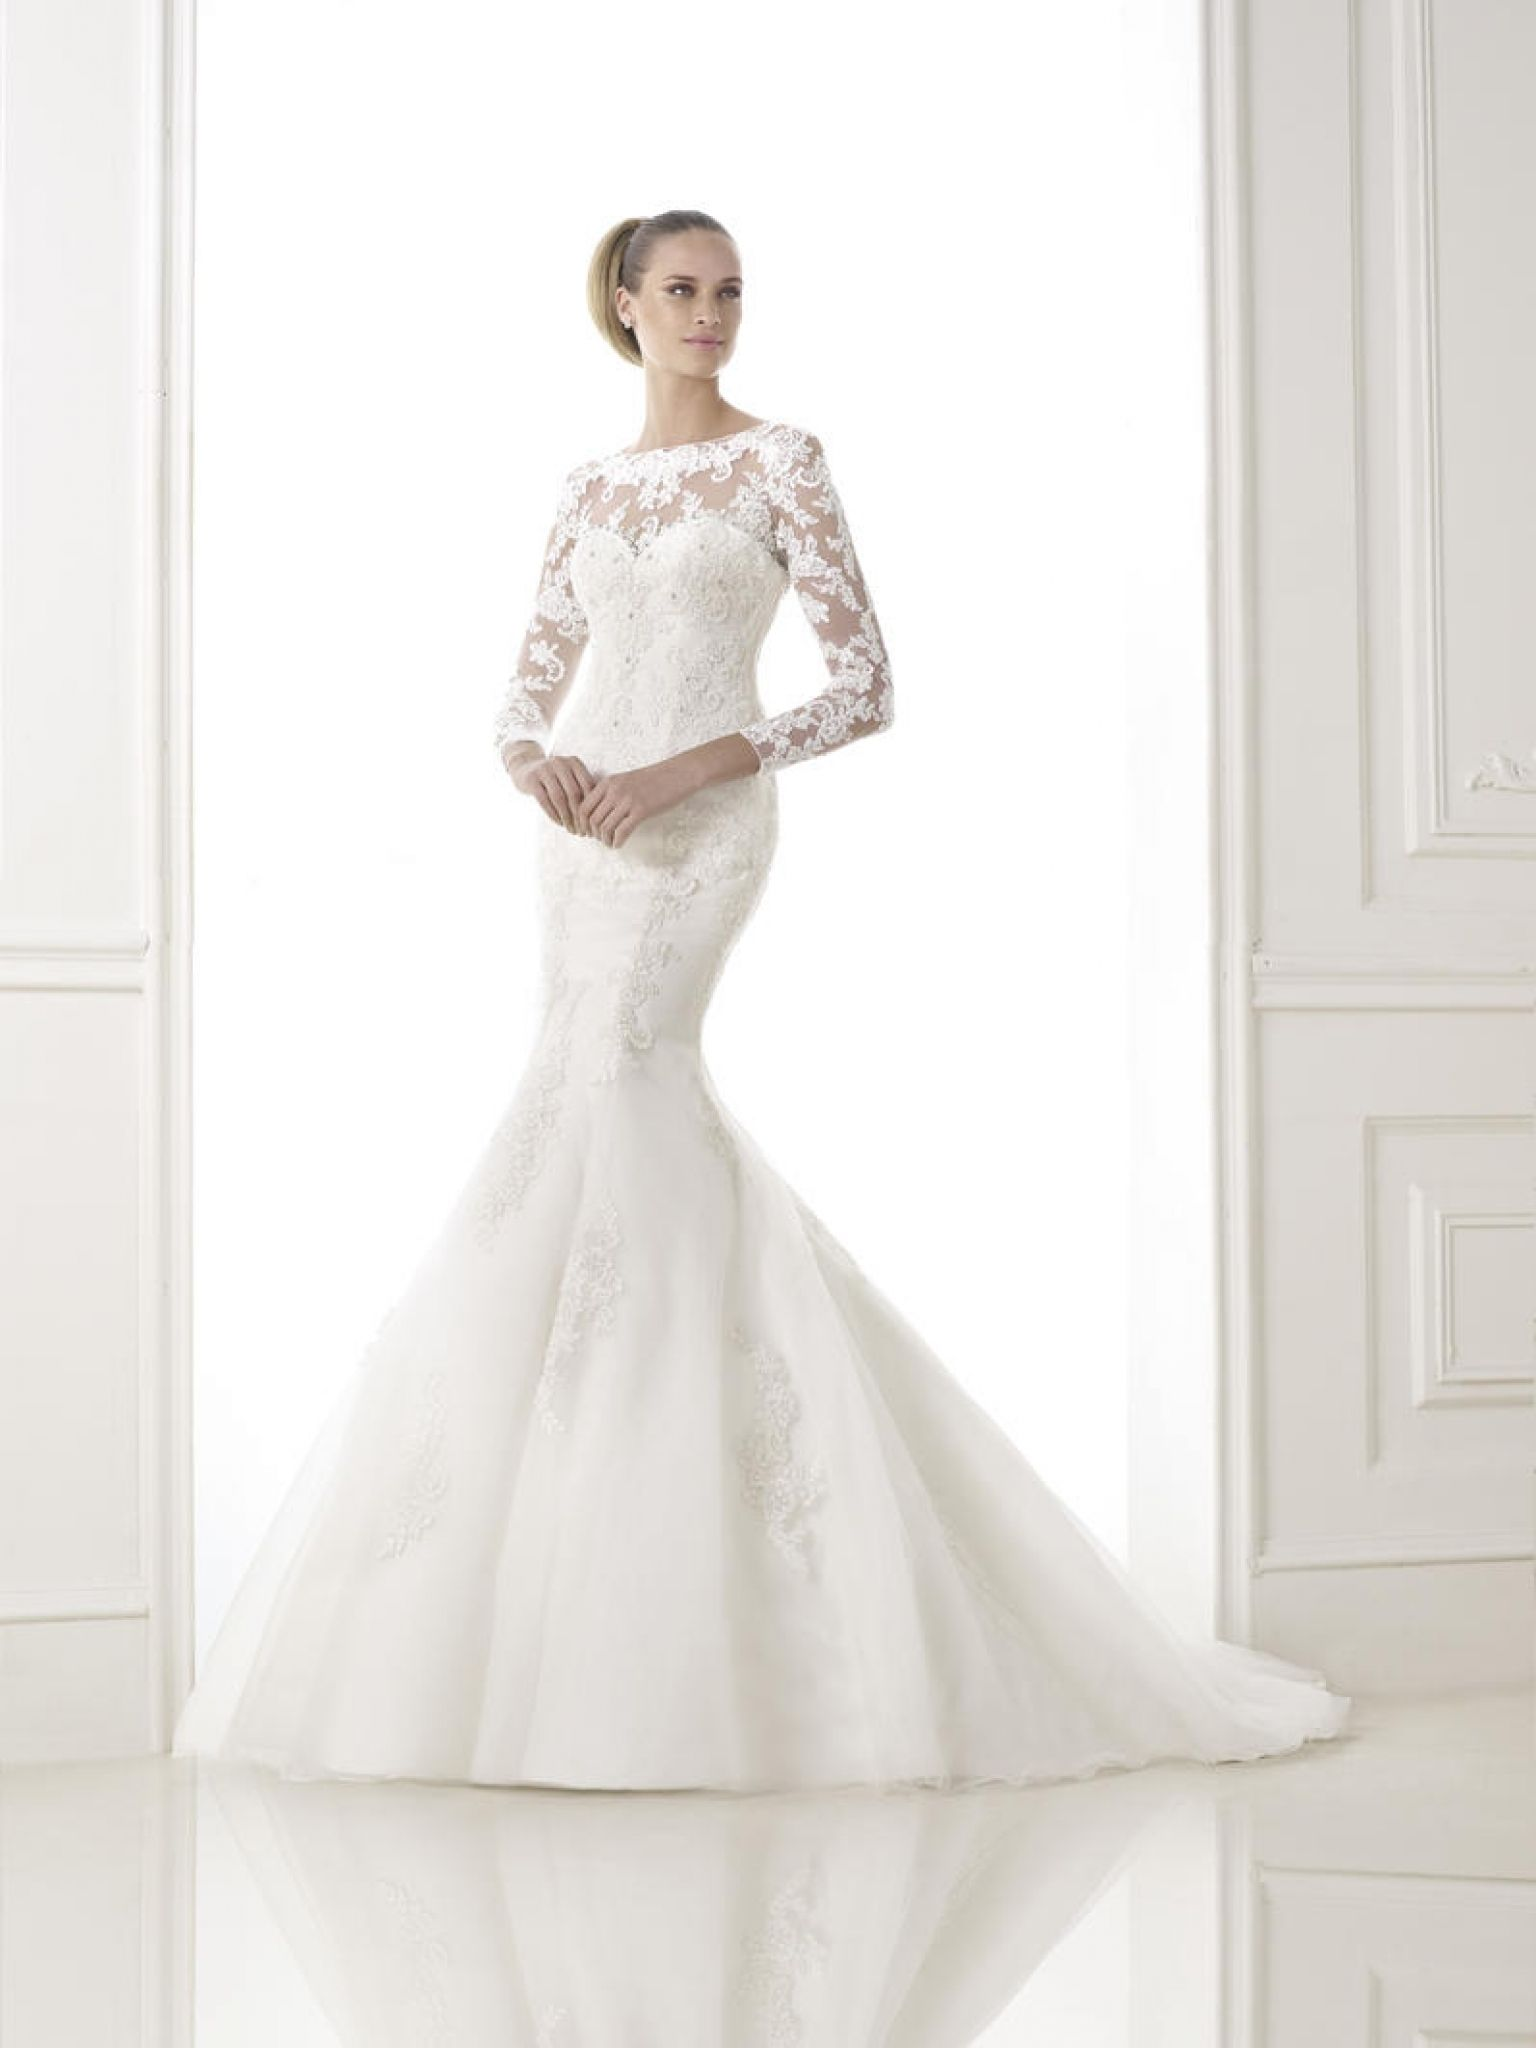 Wedding dresses minot nd best wedding dress for pear shaped Check